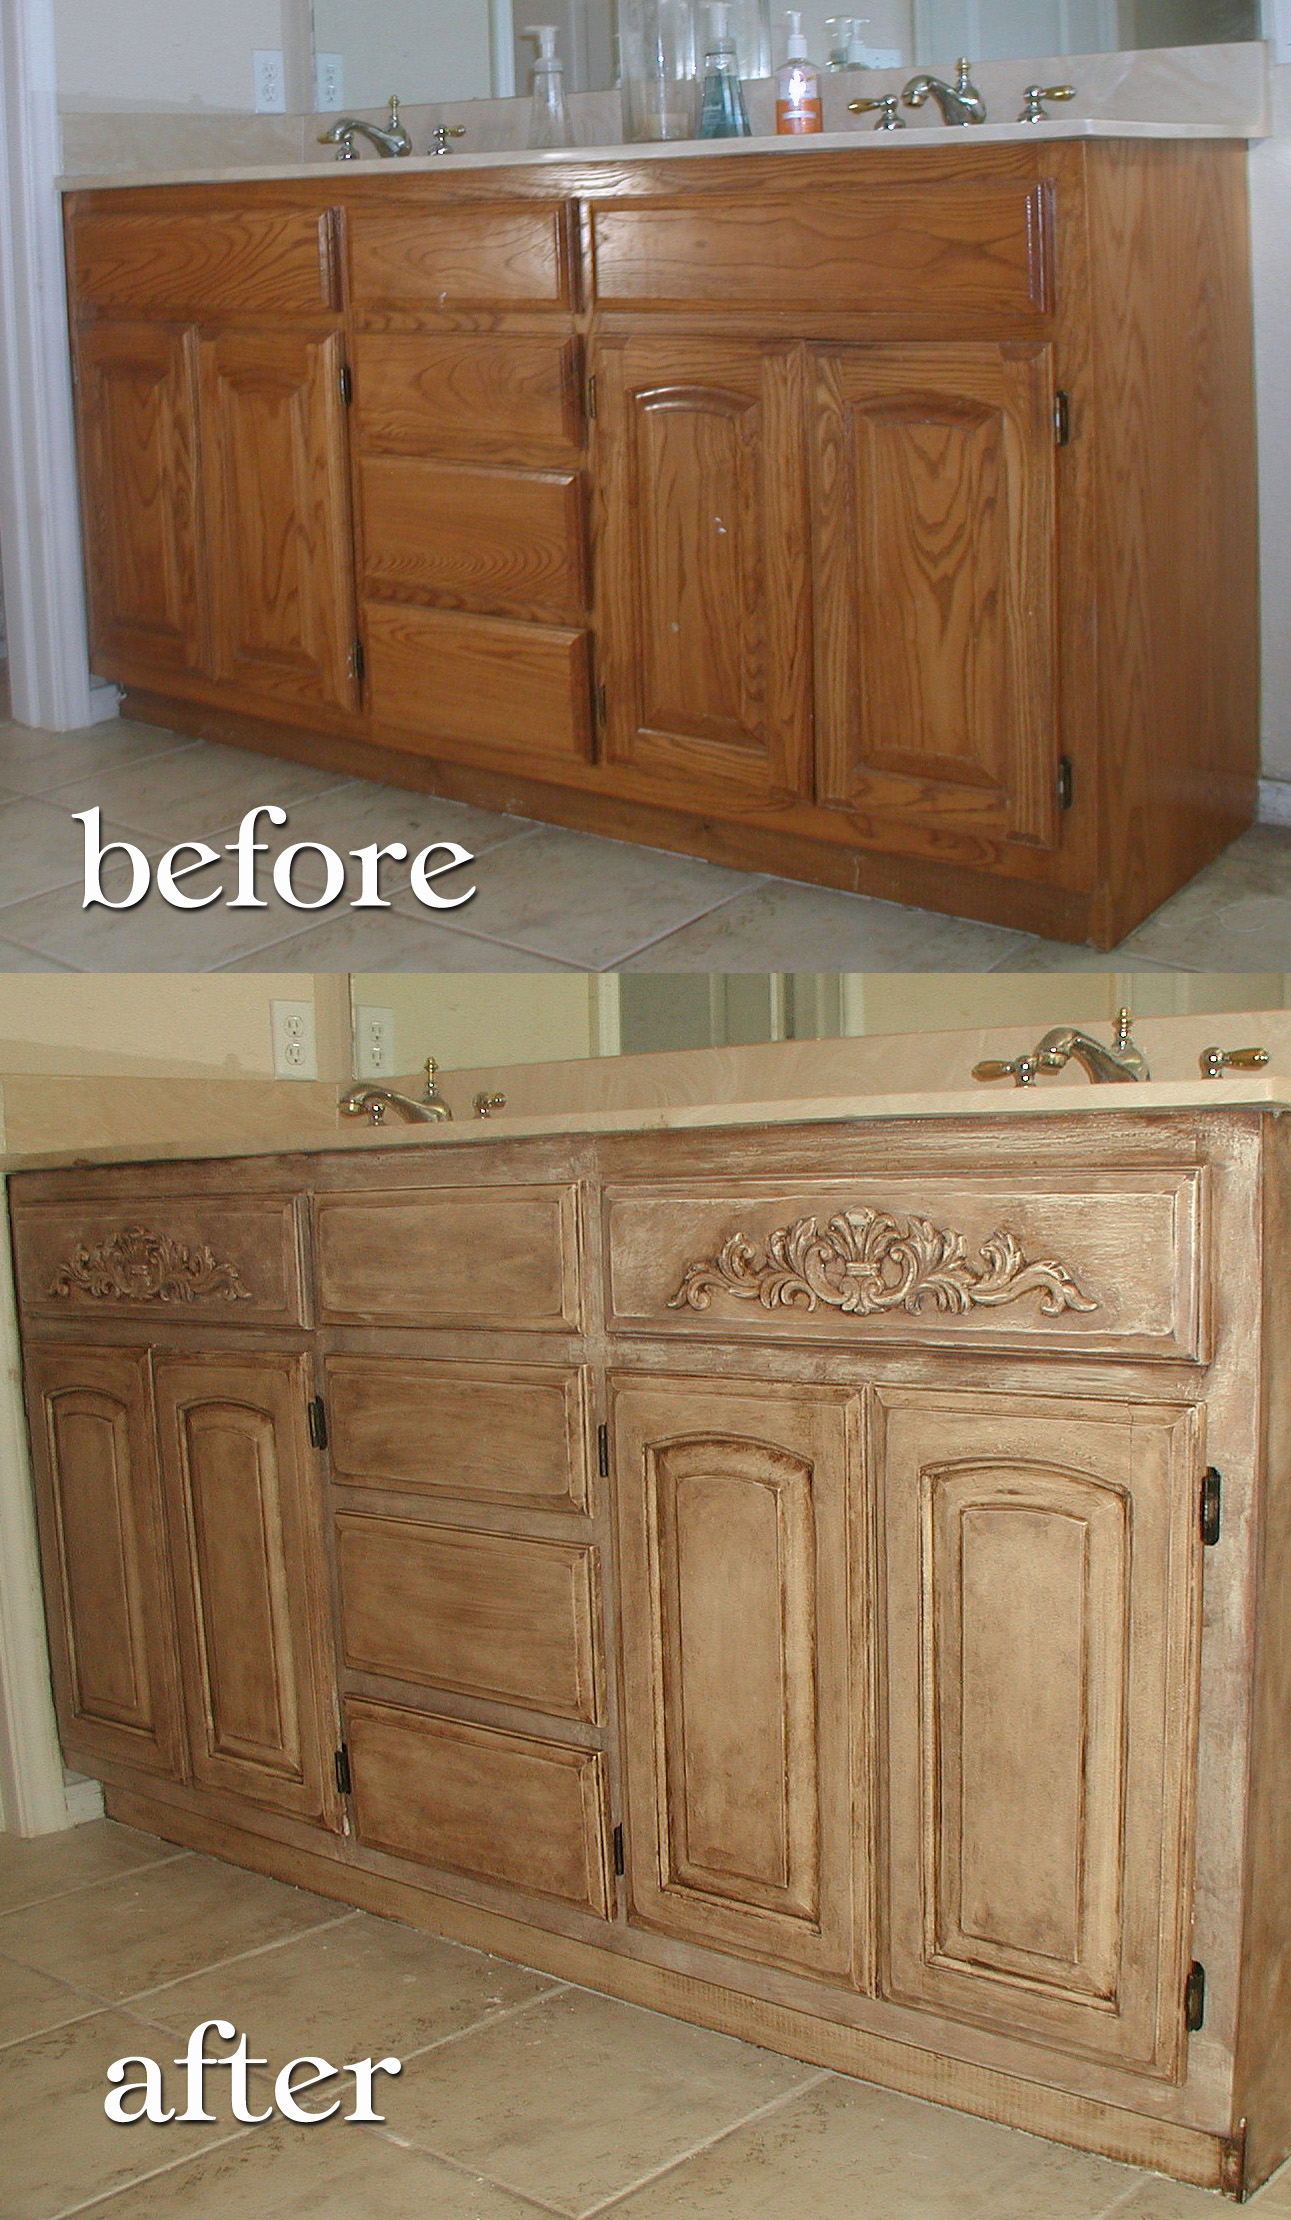 Project Transforming builder grade cabinets to Old World ASCP Old White wit